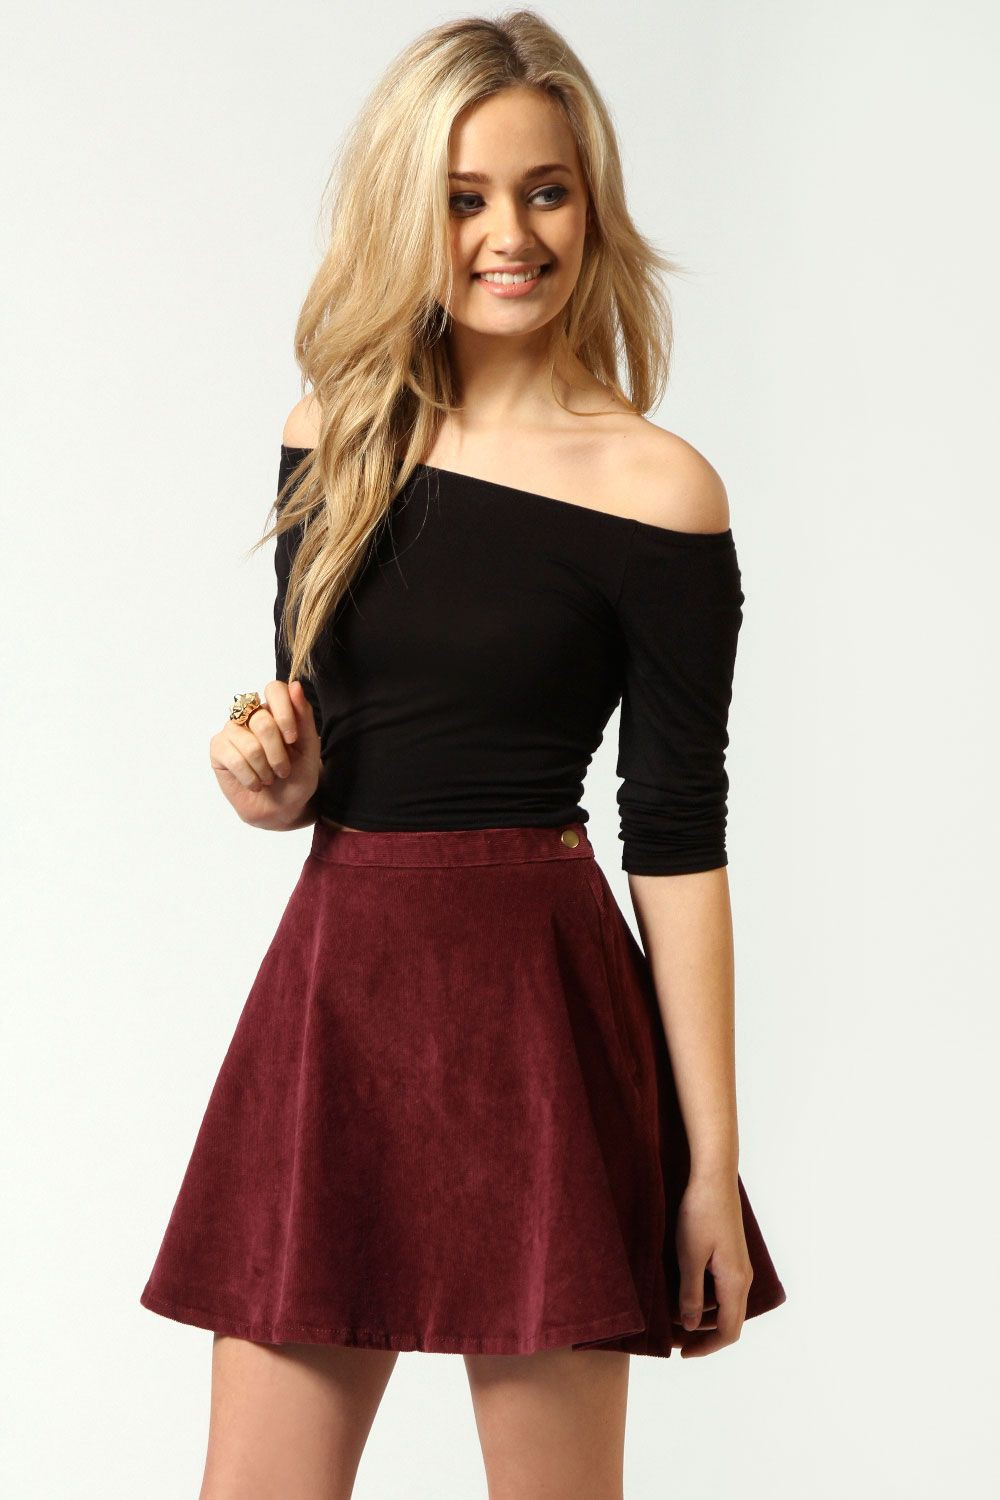 Simple dresses for teenage girls